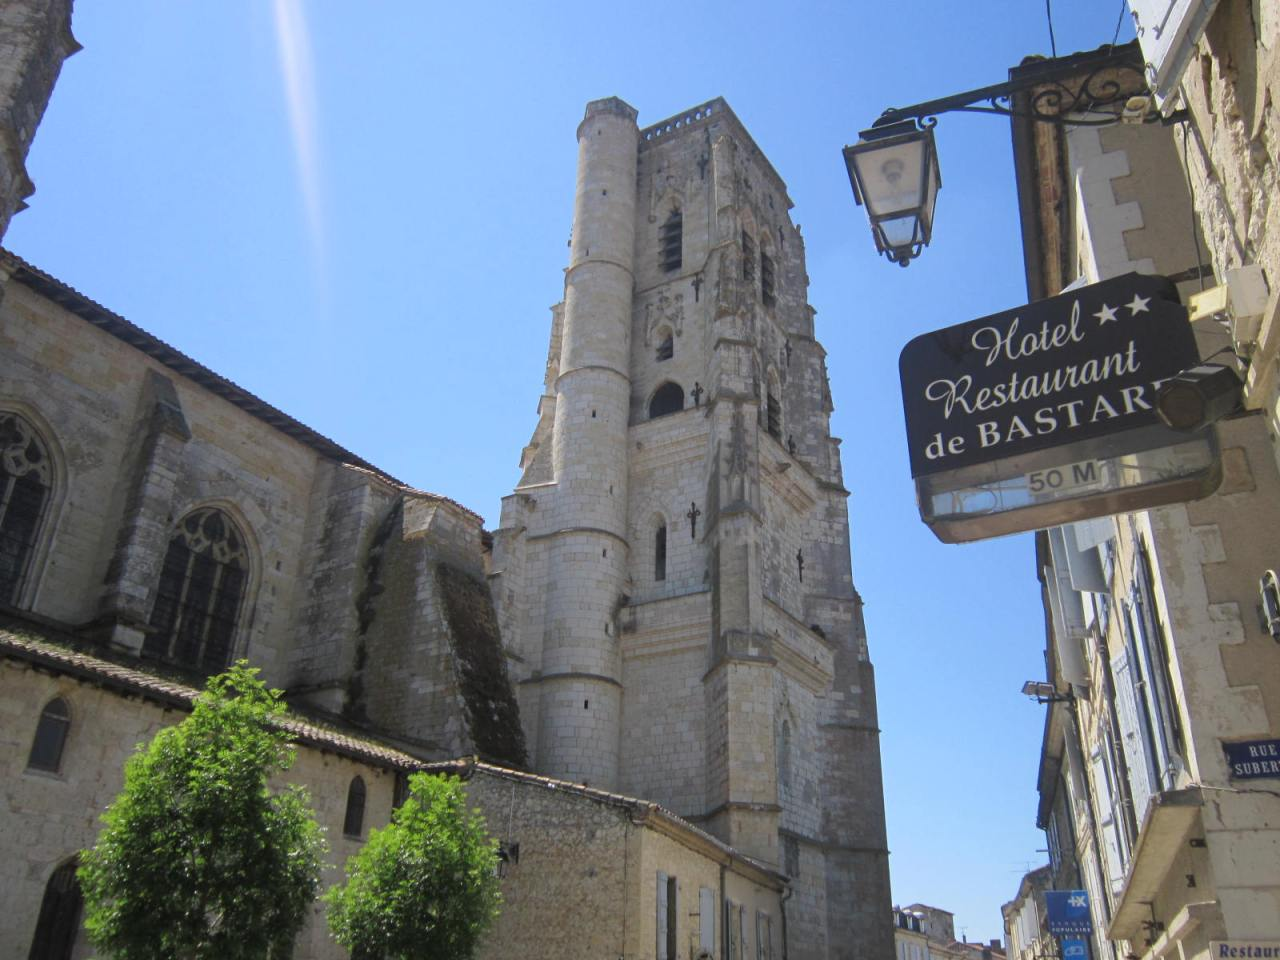 In Lectoure (Le Puy Way) there is the option of staying at the Donativo Paroisse Saint Jacques, or around the corner at the Hotel de Bastar#:-)